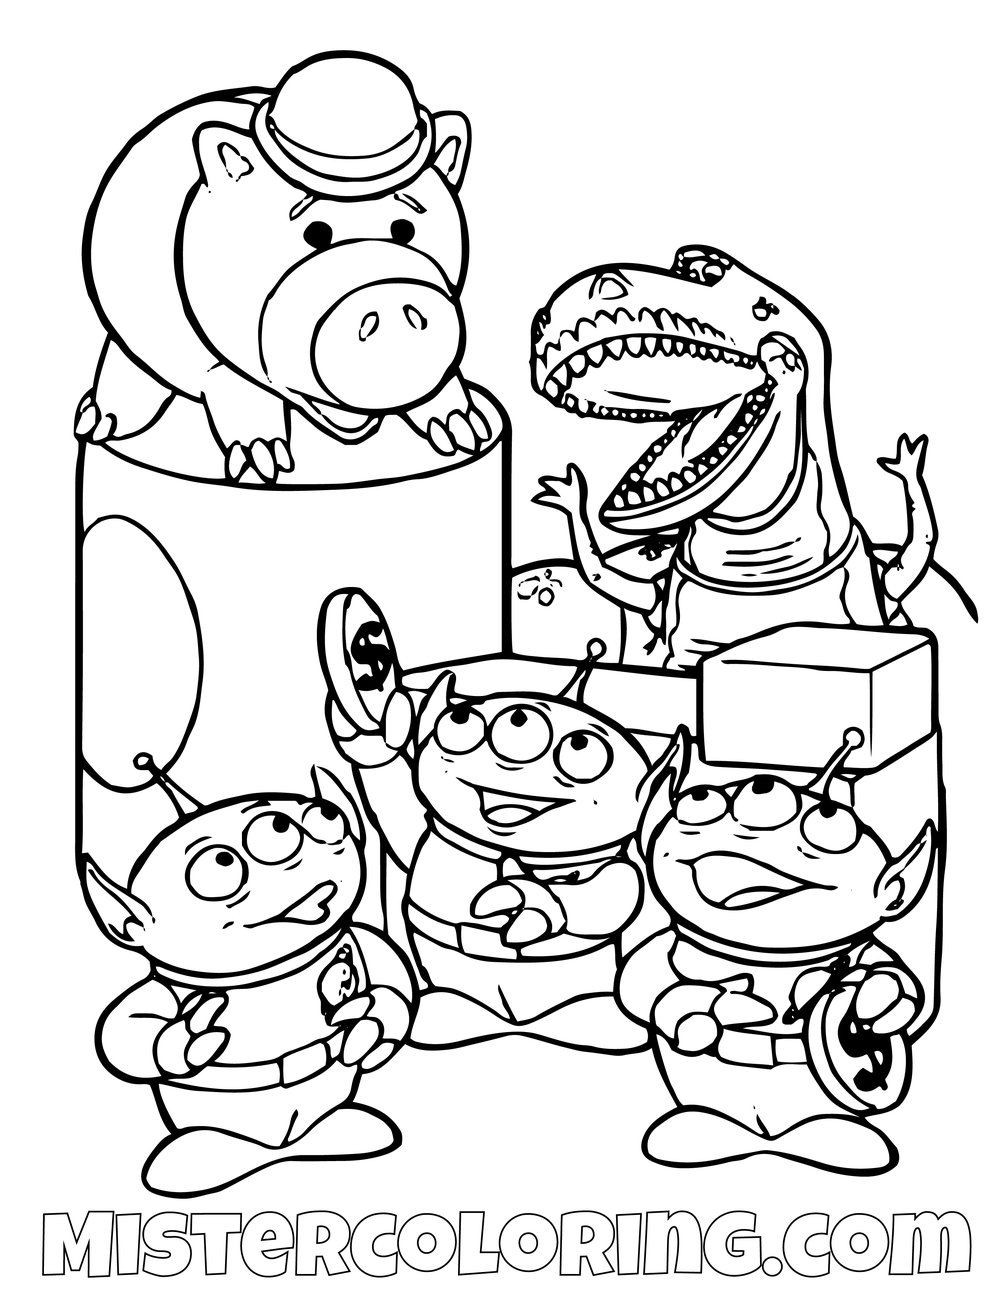 Aliens Rex And Ham Toy Story Coloring Page Toy Story Coloring Pages Puppy Coloring Pages Coloring Pages